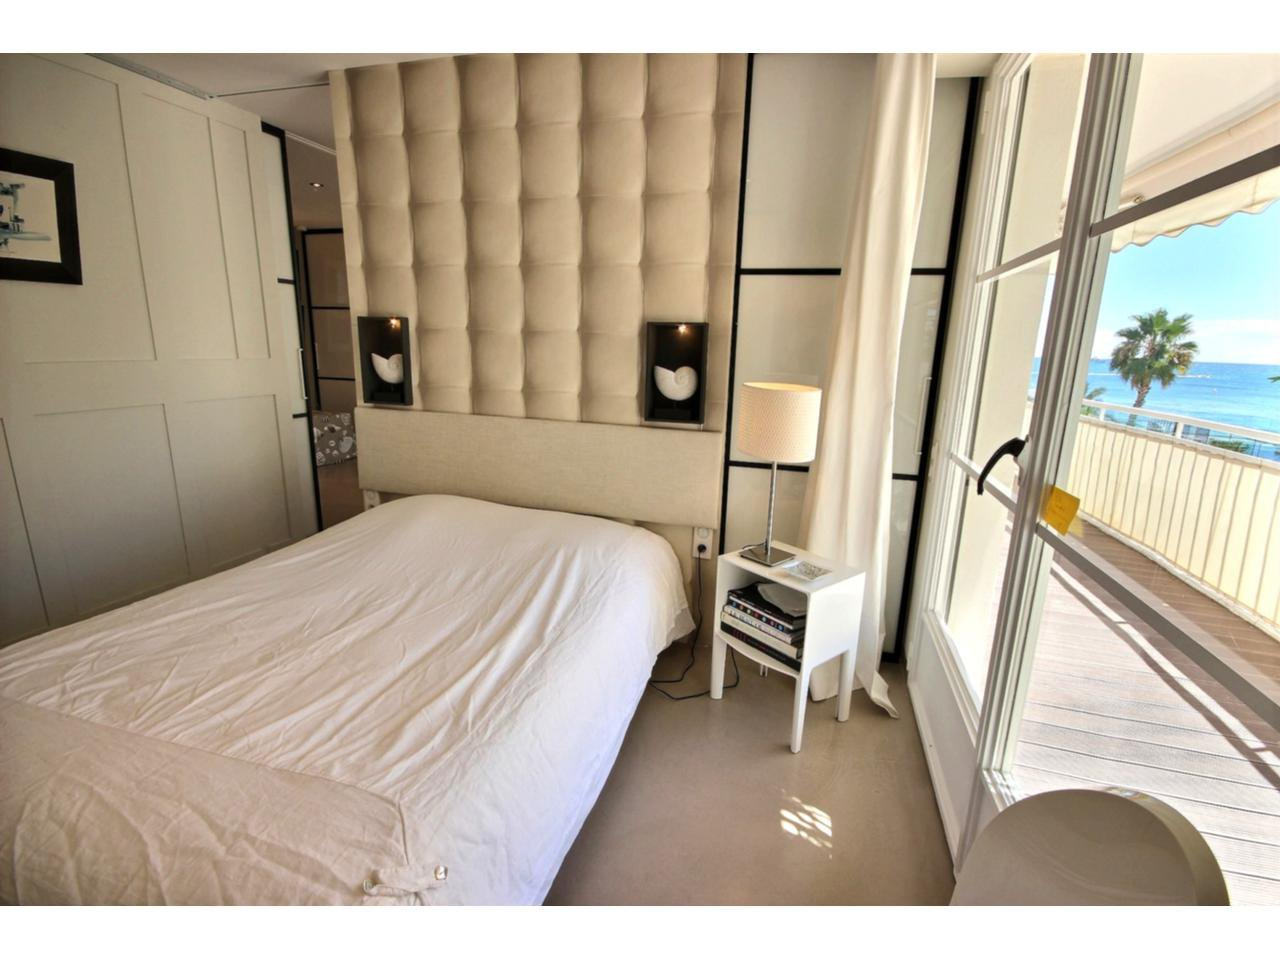 Bedroom Cannes Palm Beach property for sale with sea view